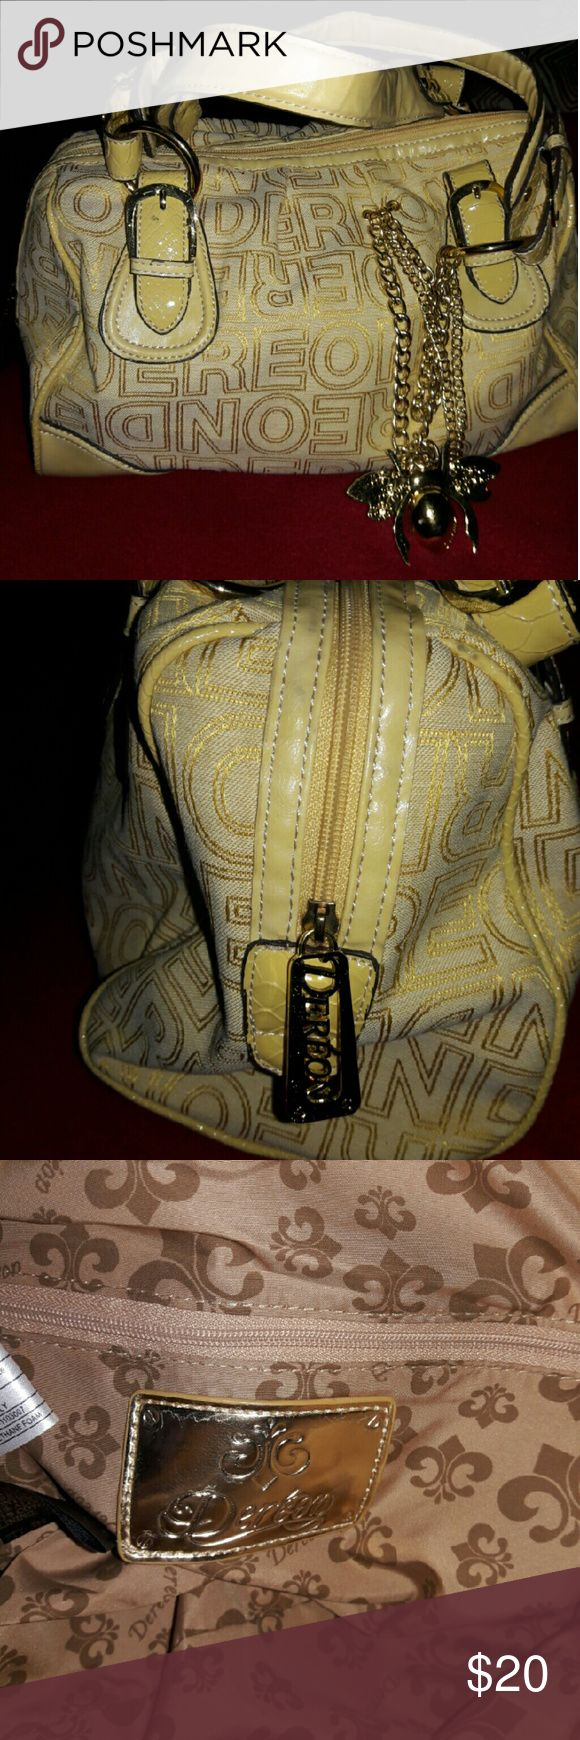 Cute DEREON purse Very cute purse with gold hard ware by DEREON Dereon Bags Satchels